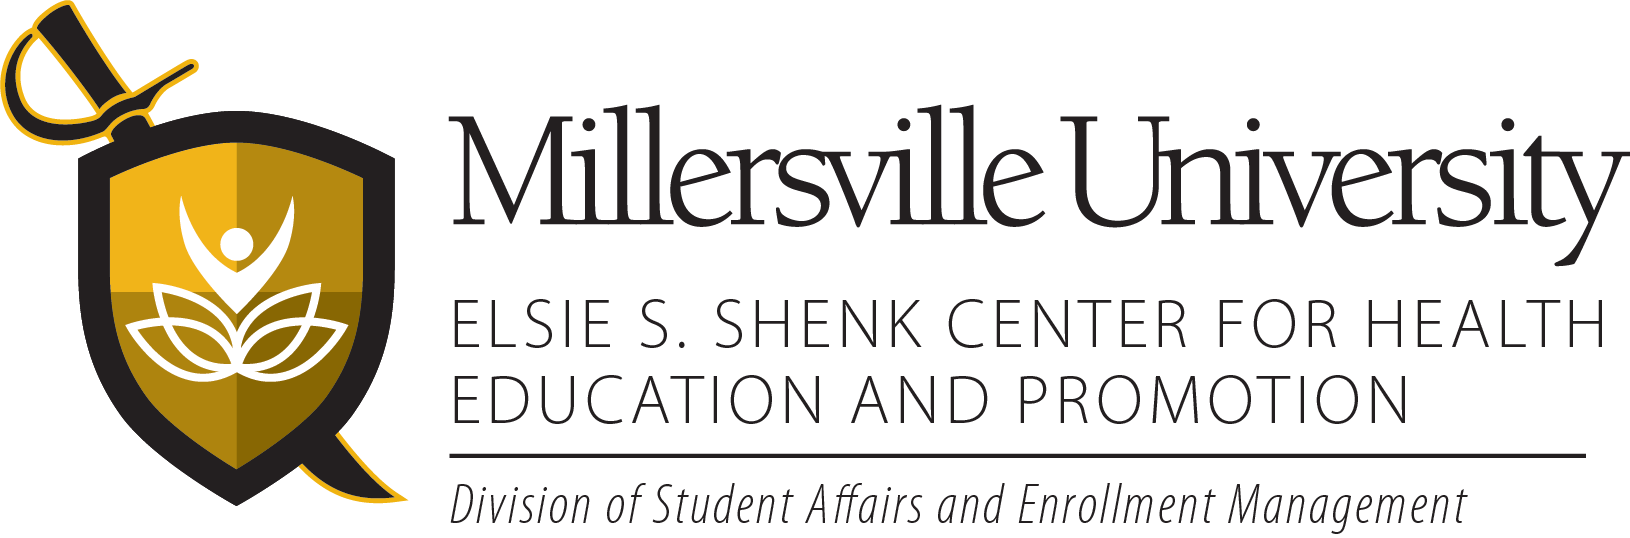 Center For Health Education And Promotion Millersville University